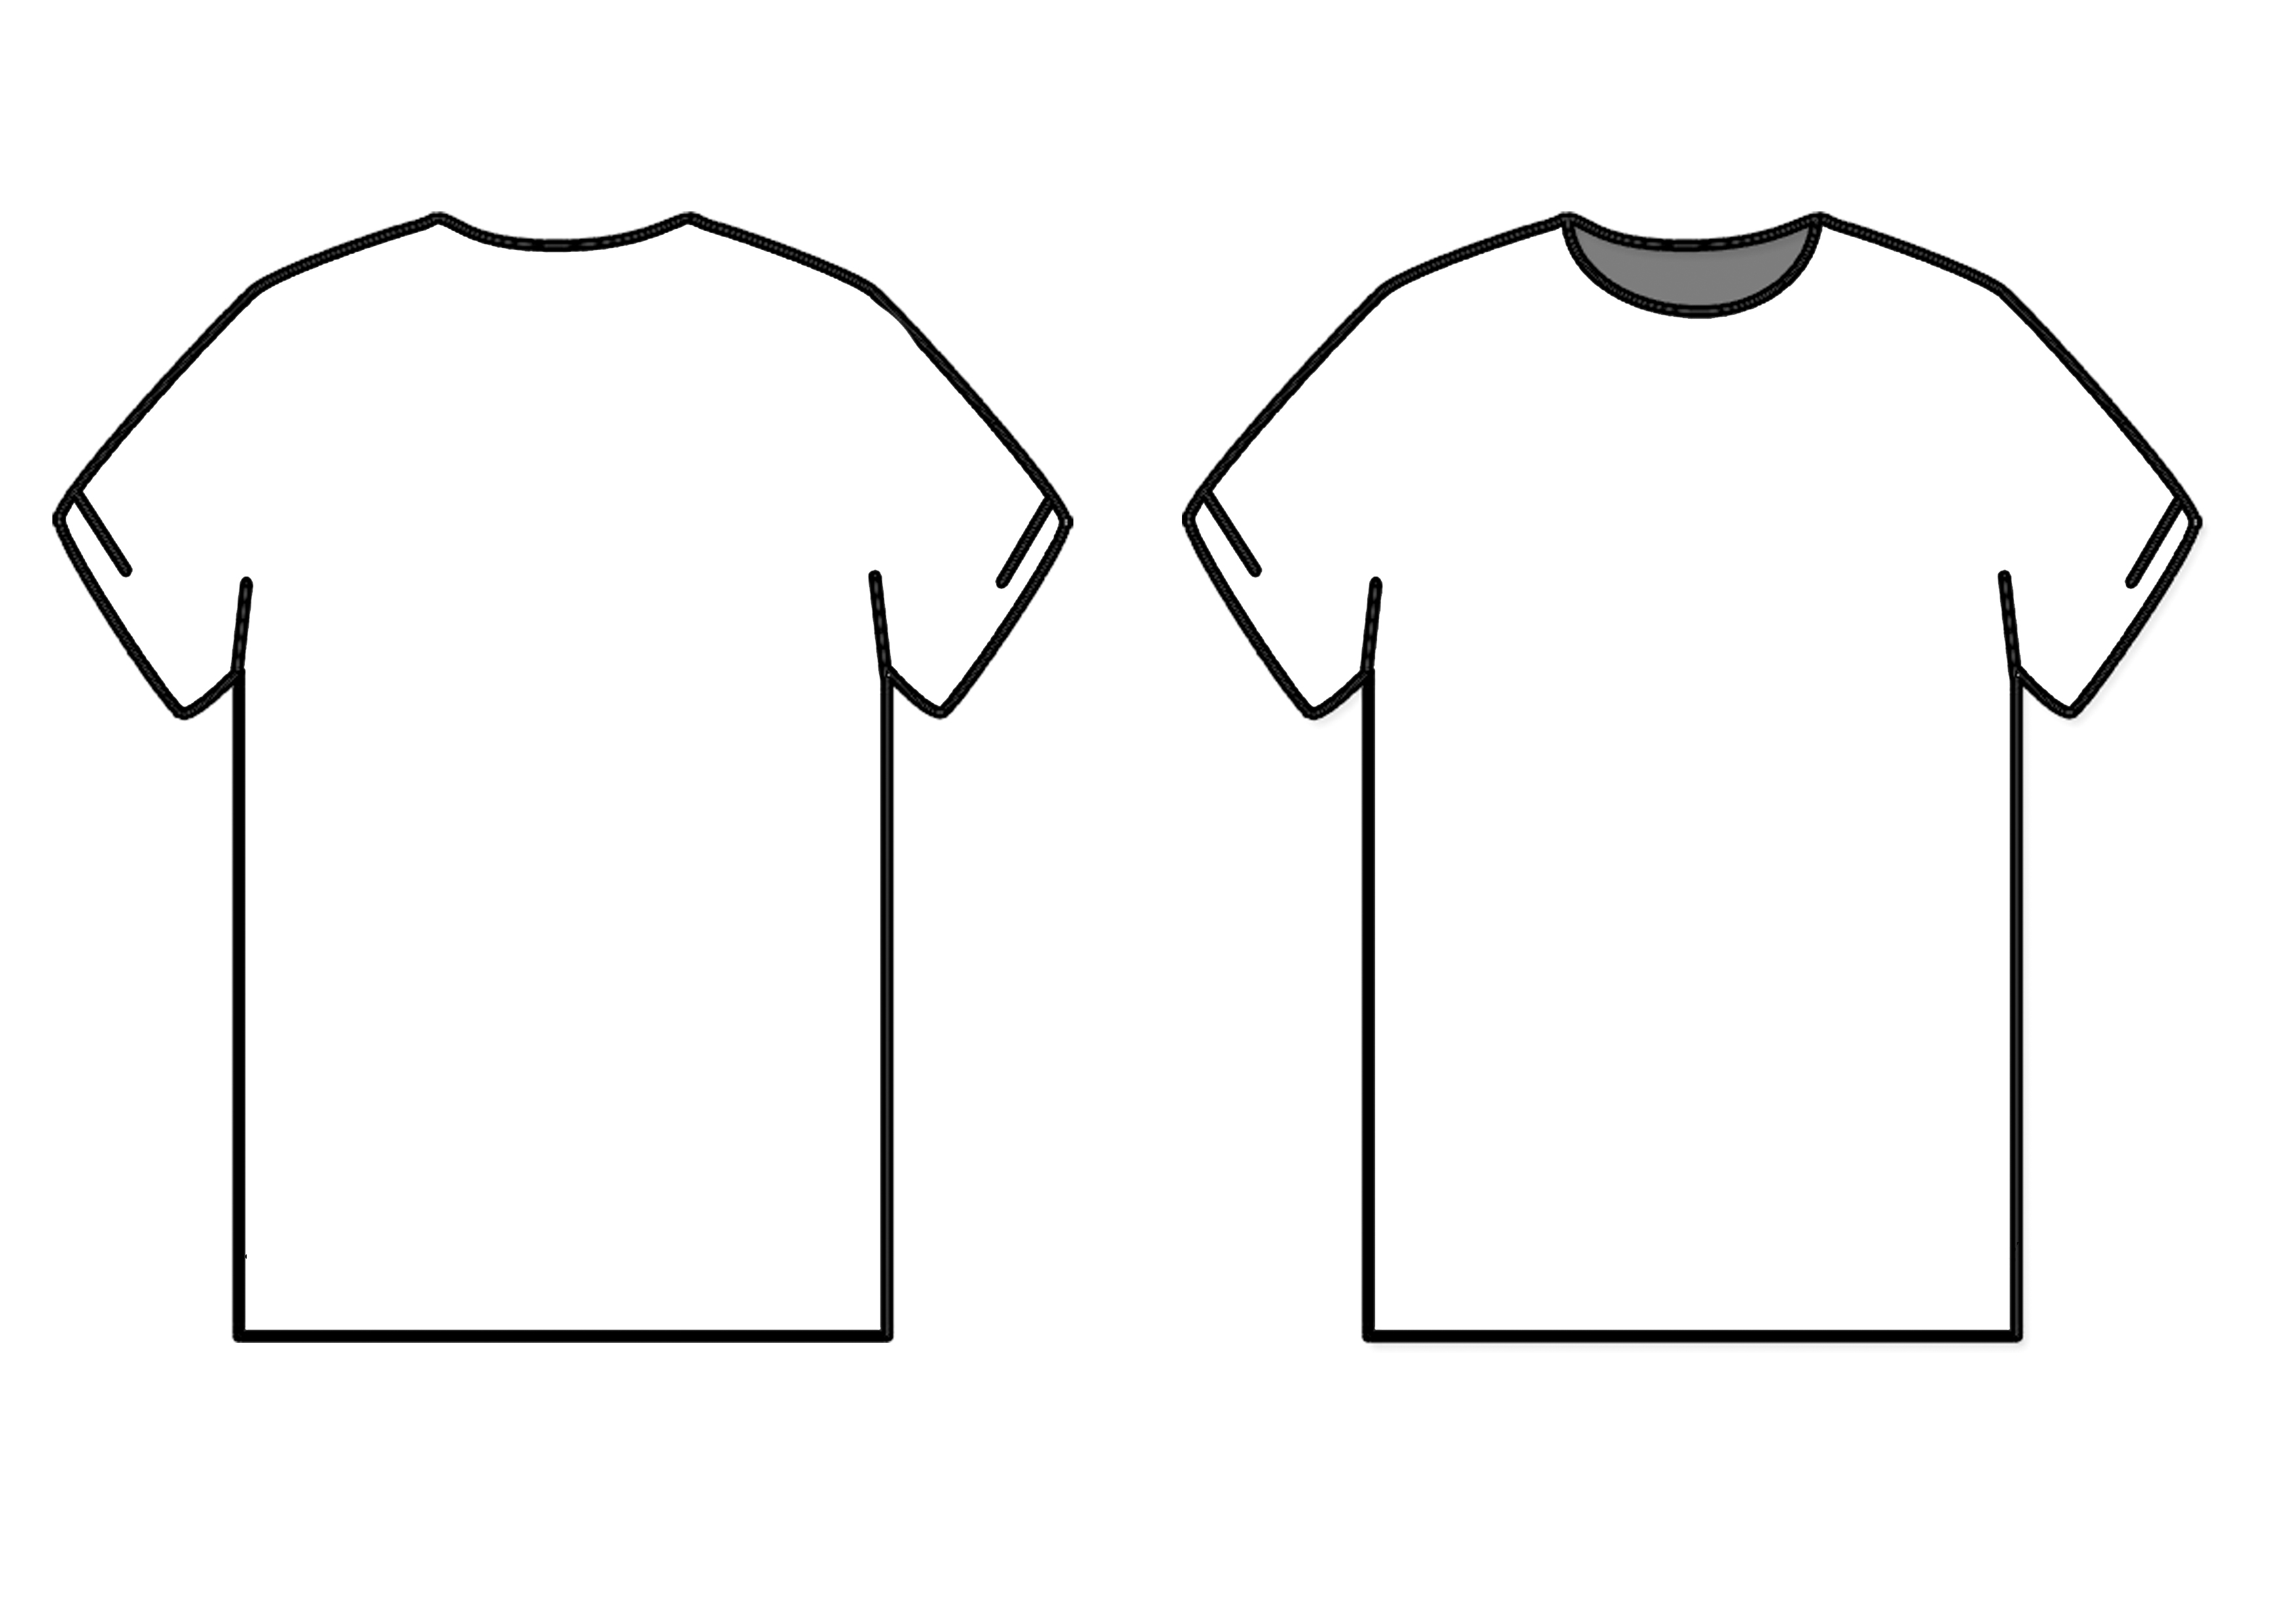 Design t shirt in photoshop template - Design T Shirt Template Photoshop T Shirt Design Template